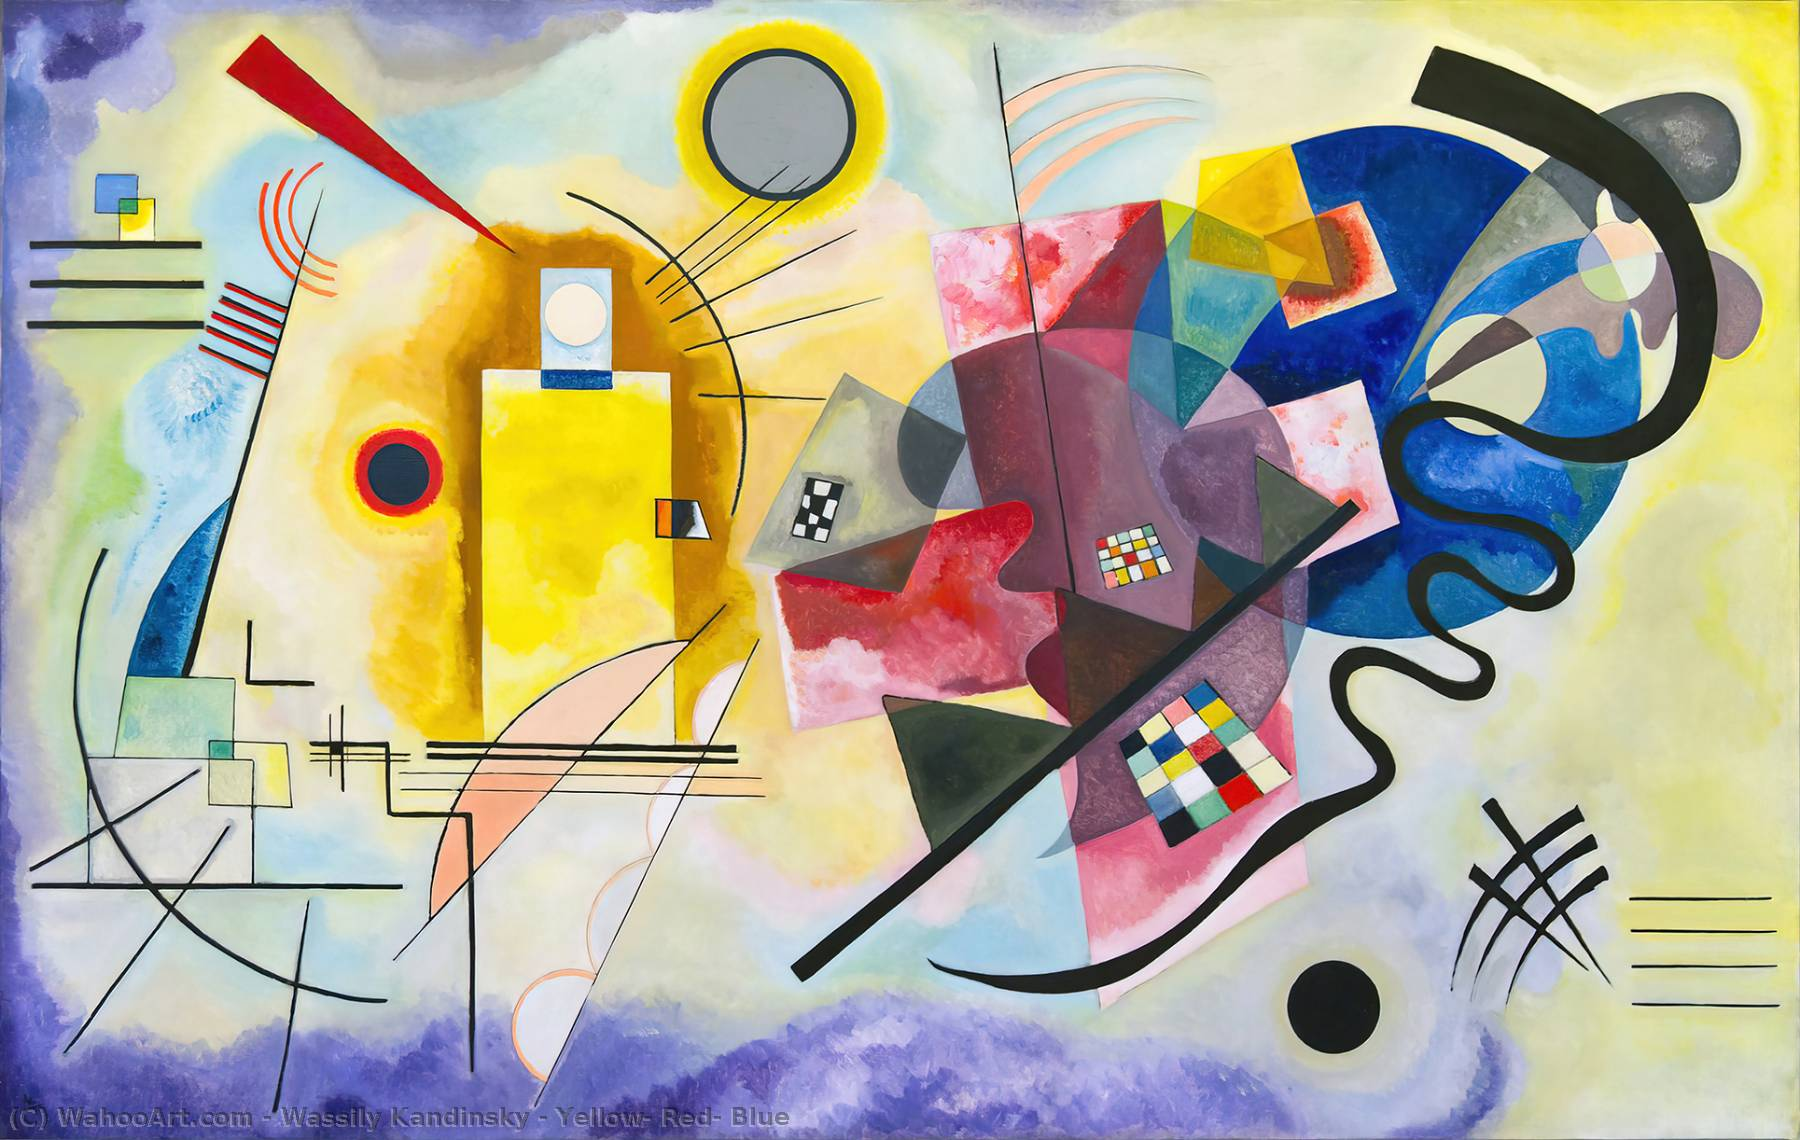 famous painting Yellow, Red, Blue of Wassily Kandinsky